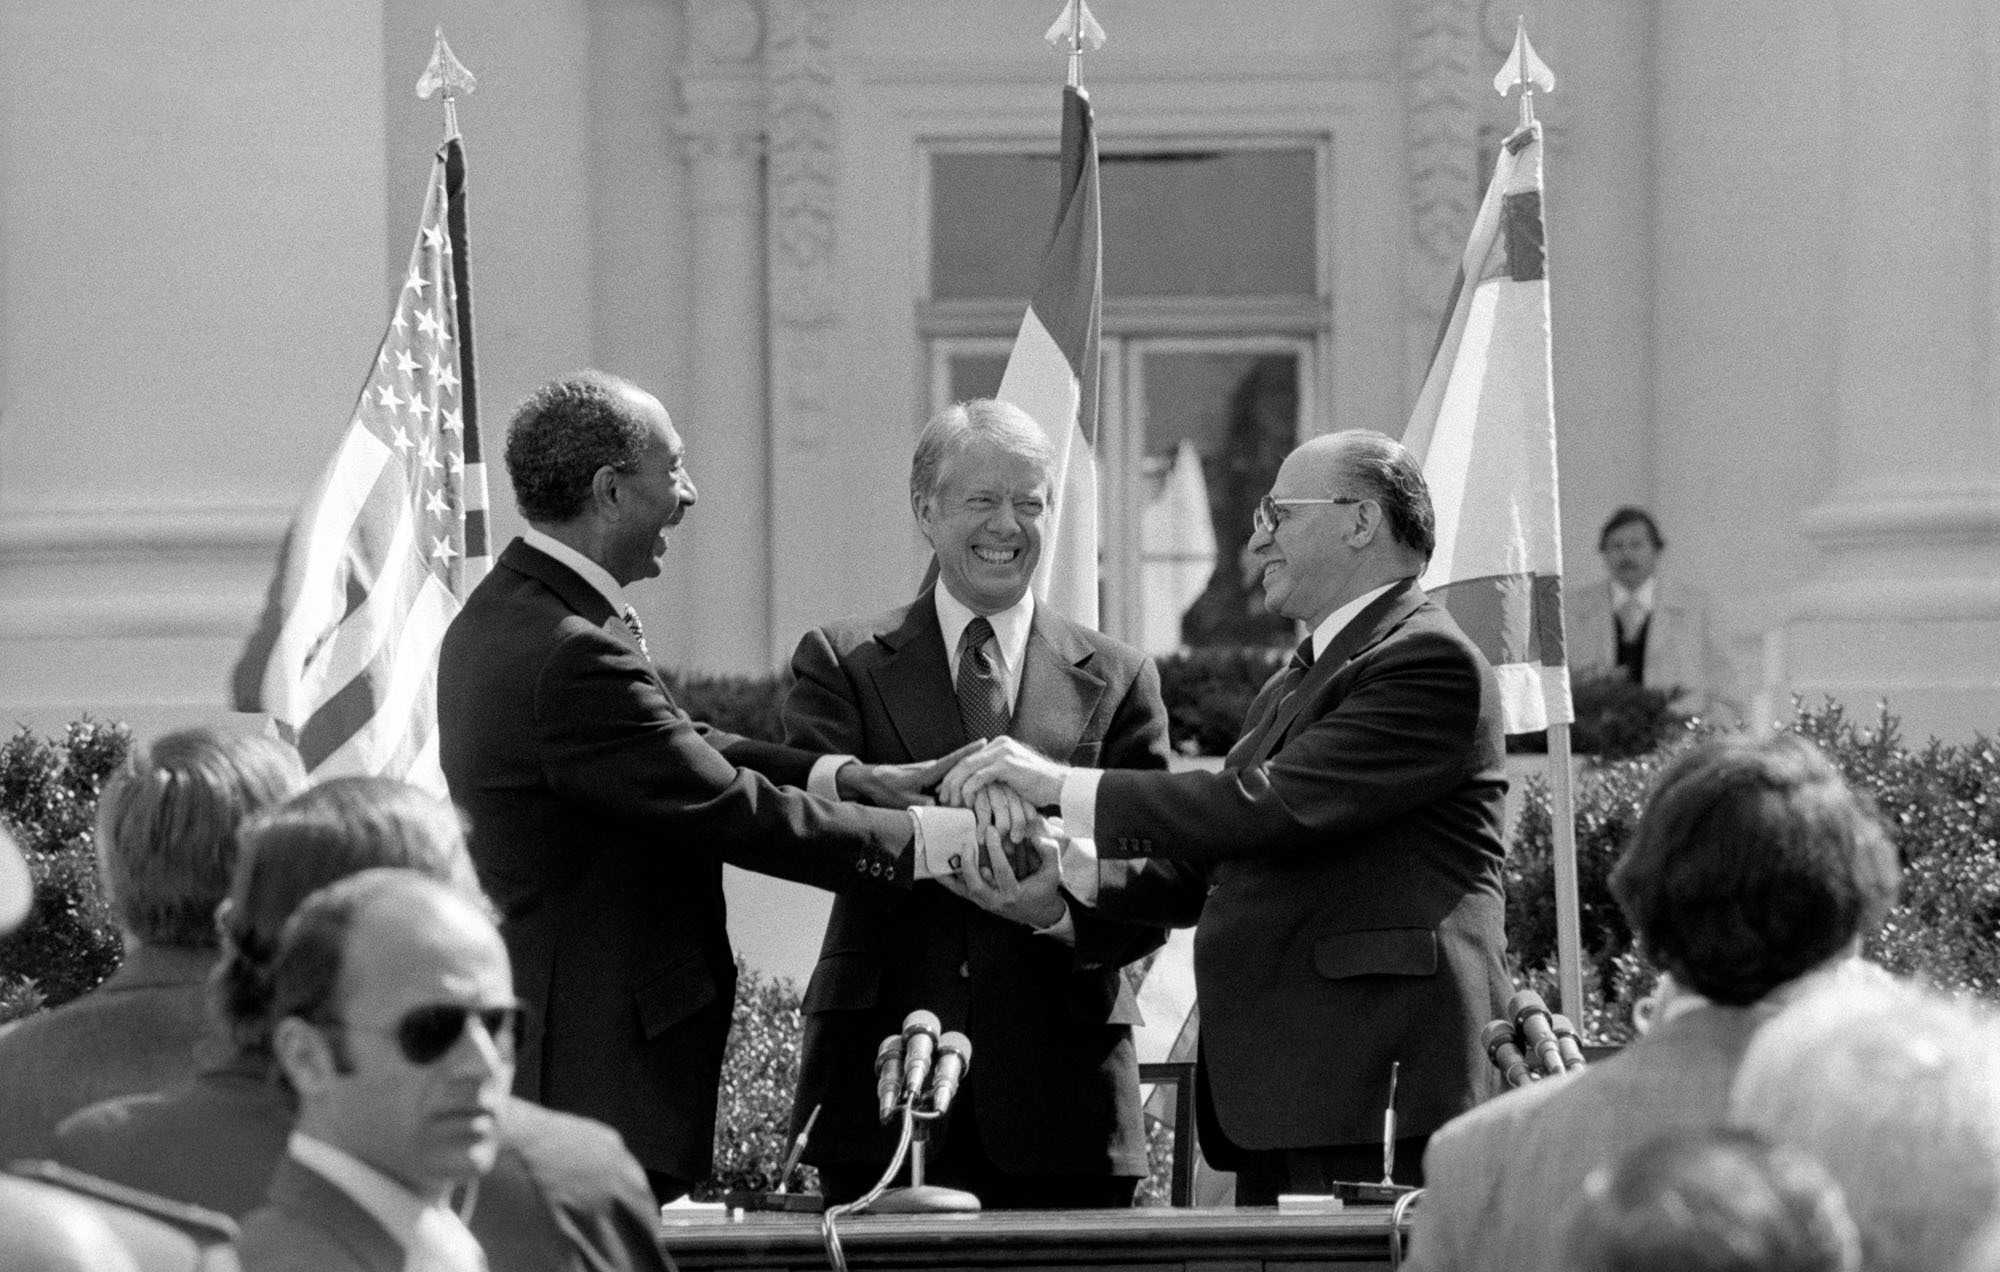 On This Day 36 Years Ago: The Signing of the Egypt-Israel Peace Treaty